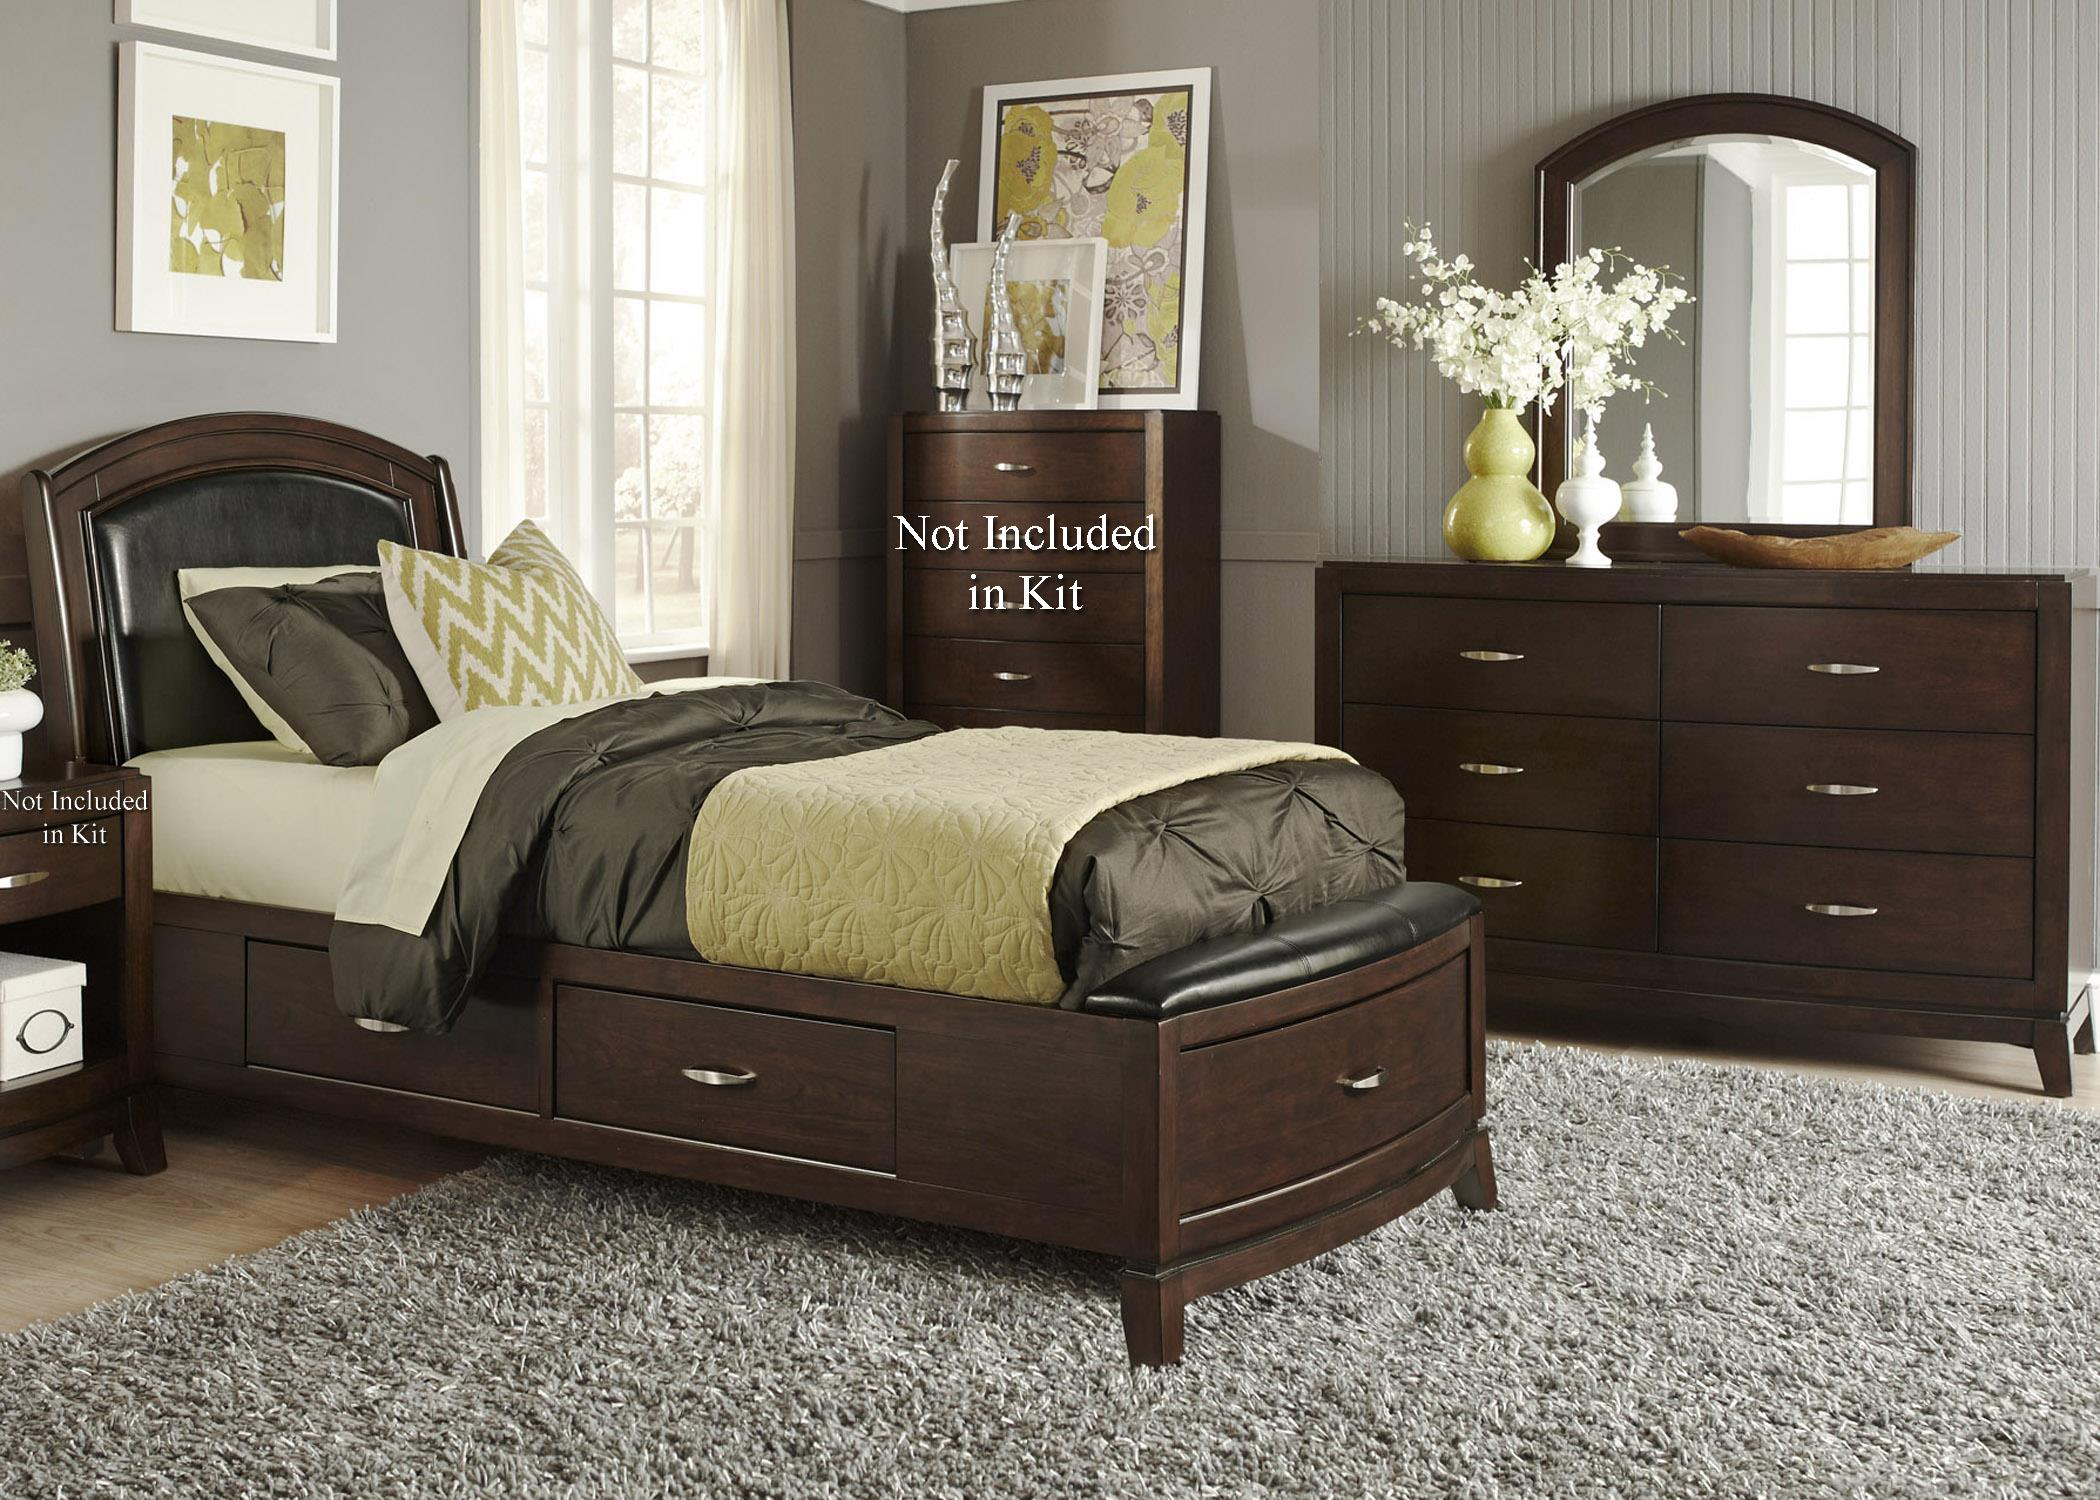 Liberty Furniture Avalon Full Storage Bedroom Group 1 - Item Number: 505-YBR-F1SDM